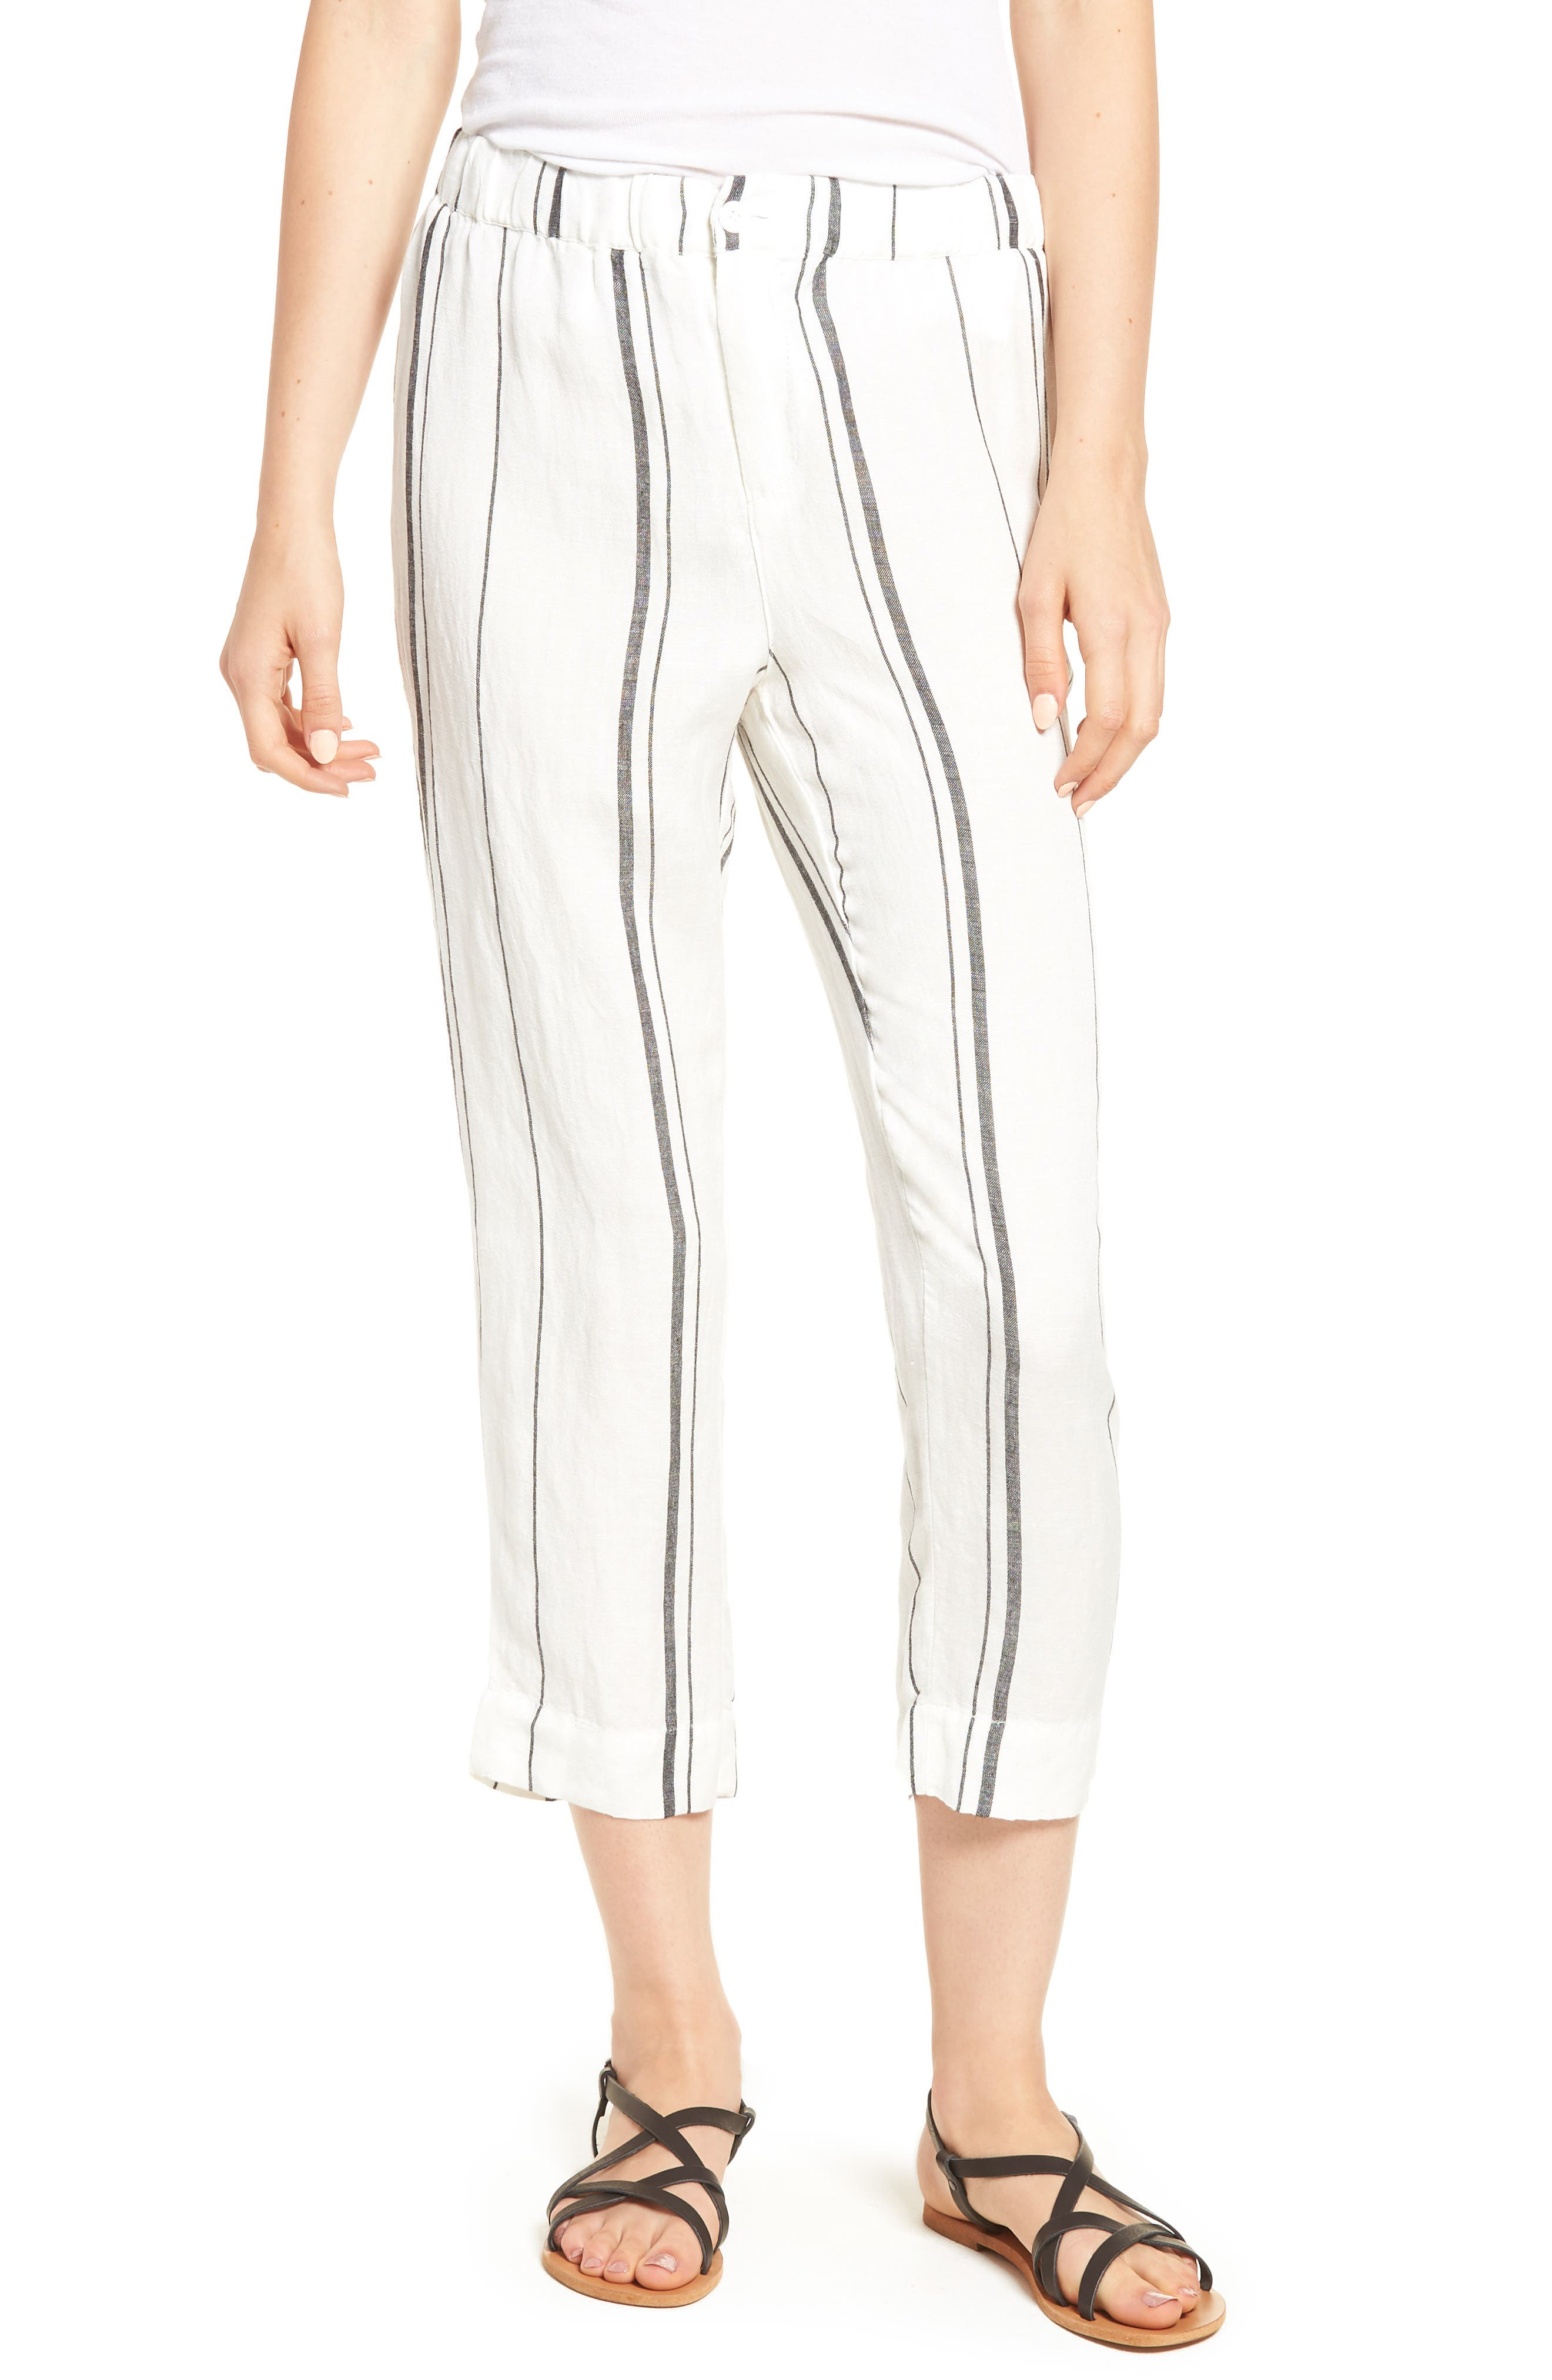 THREAD & SUPPLY Annika Stripe Crop Pants, Main, color, 001